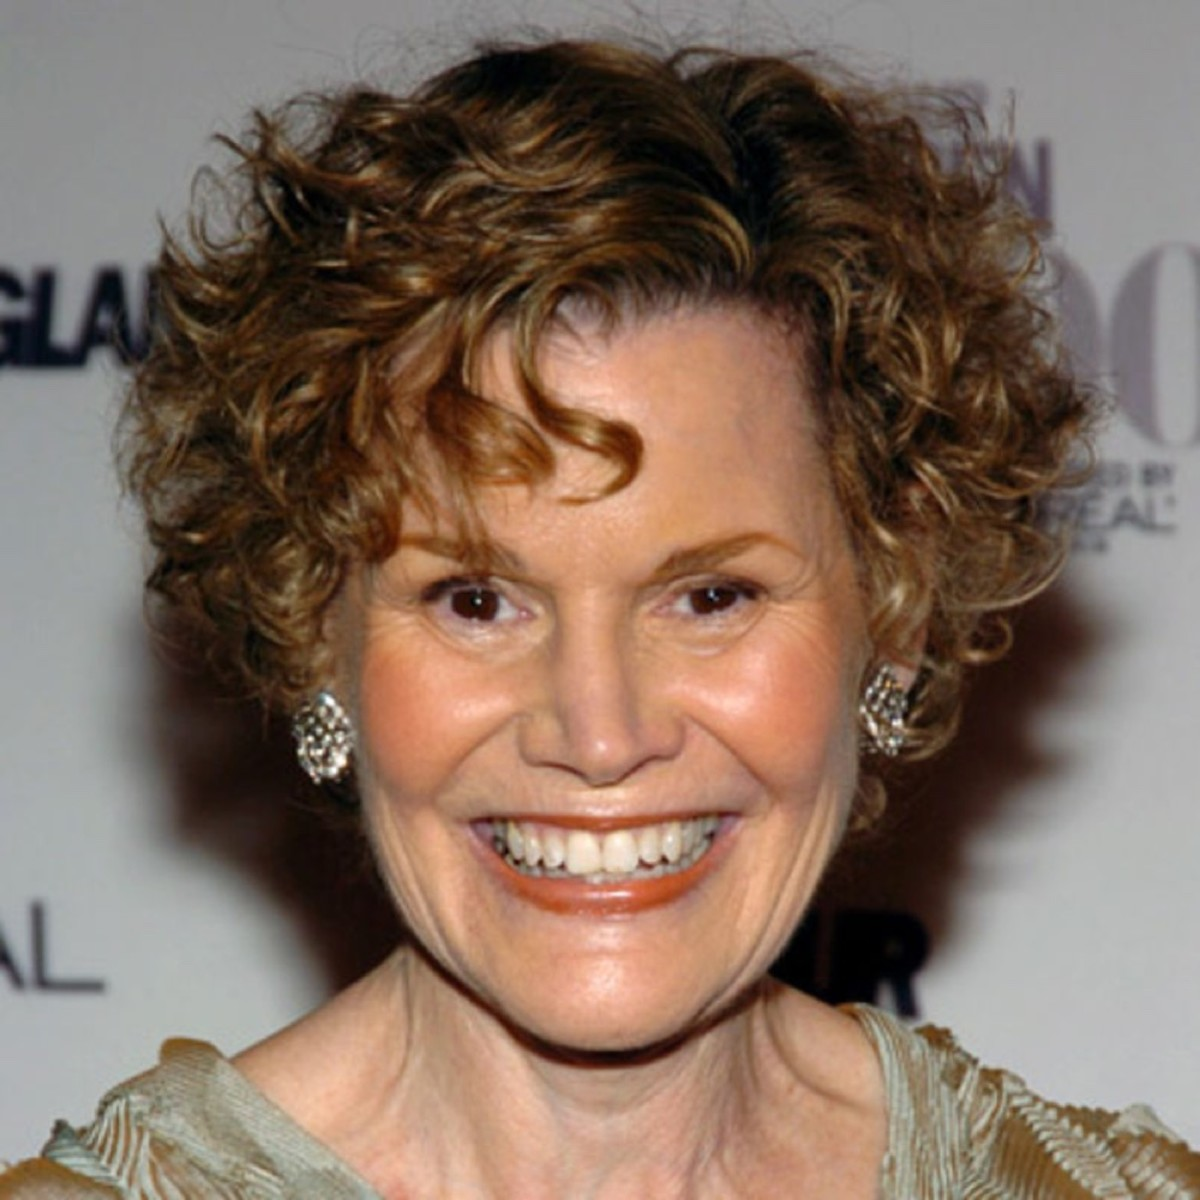 Author Judy Blume in 2004.